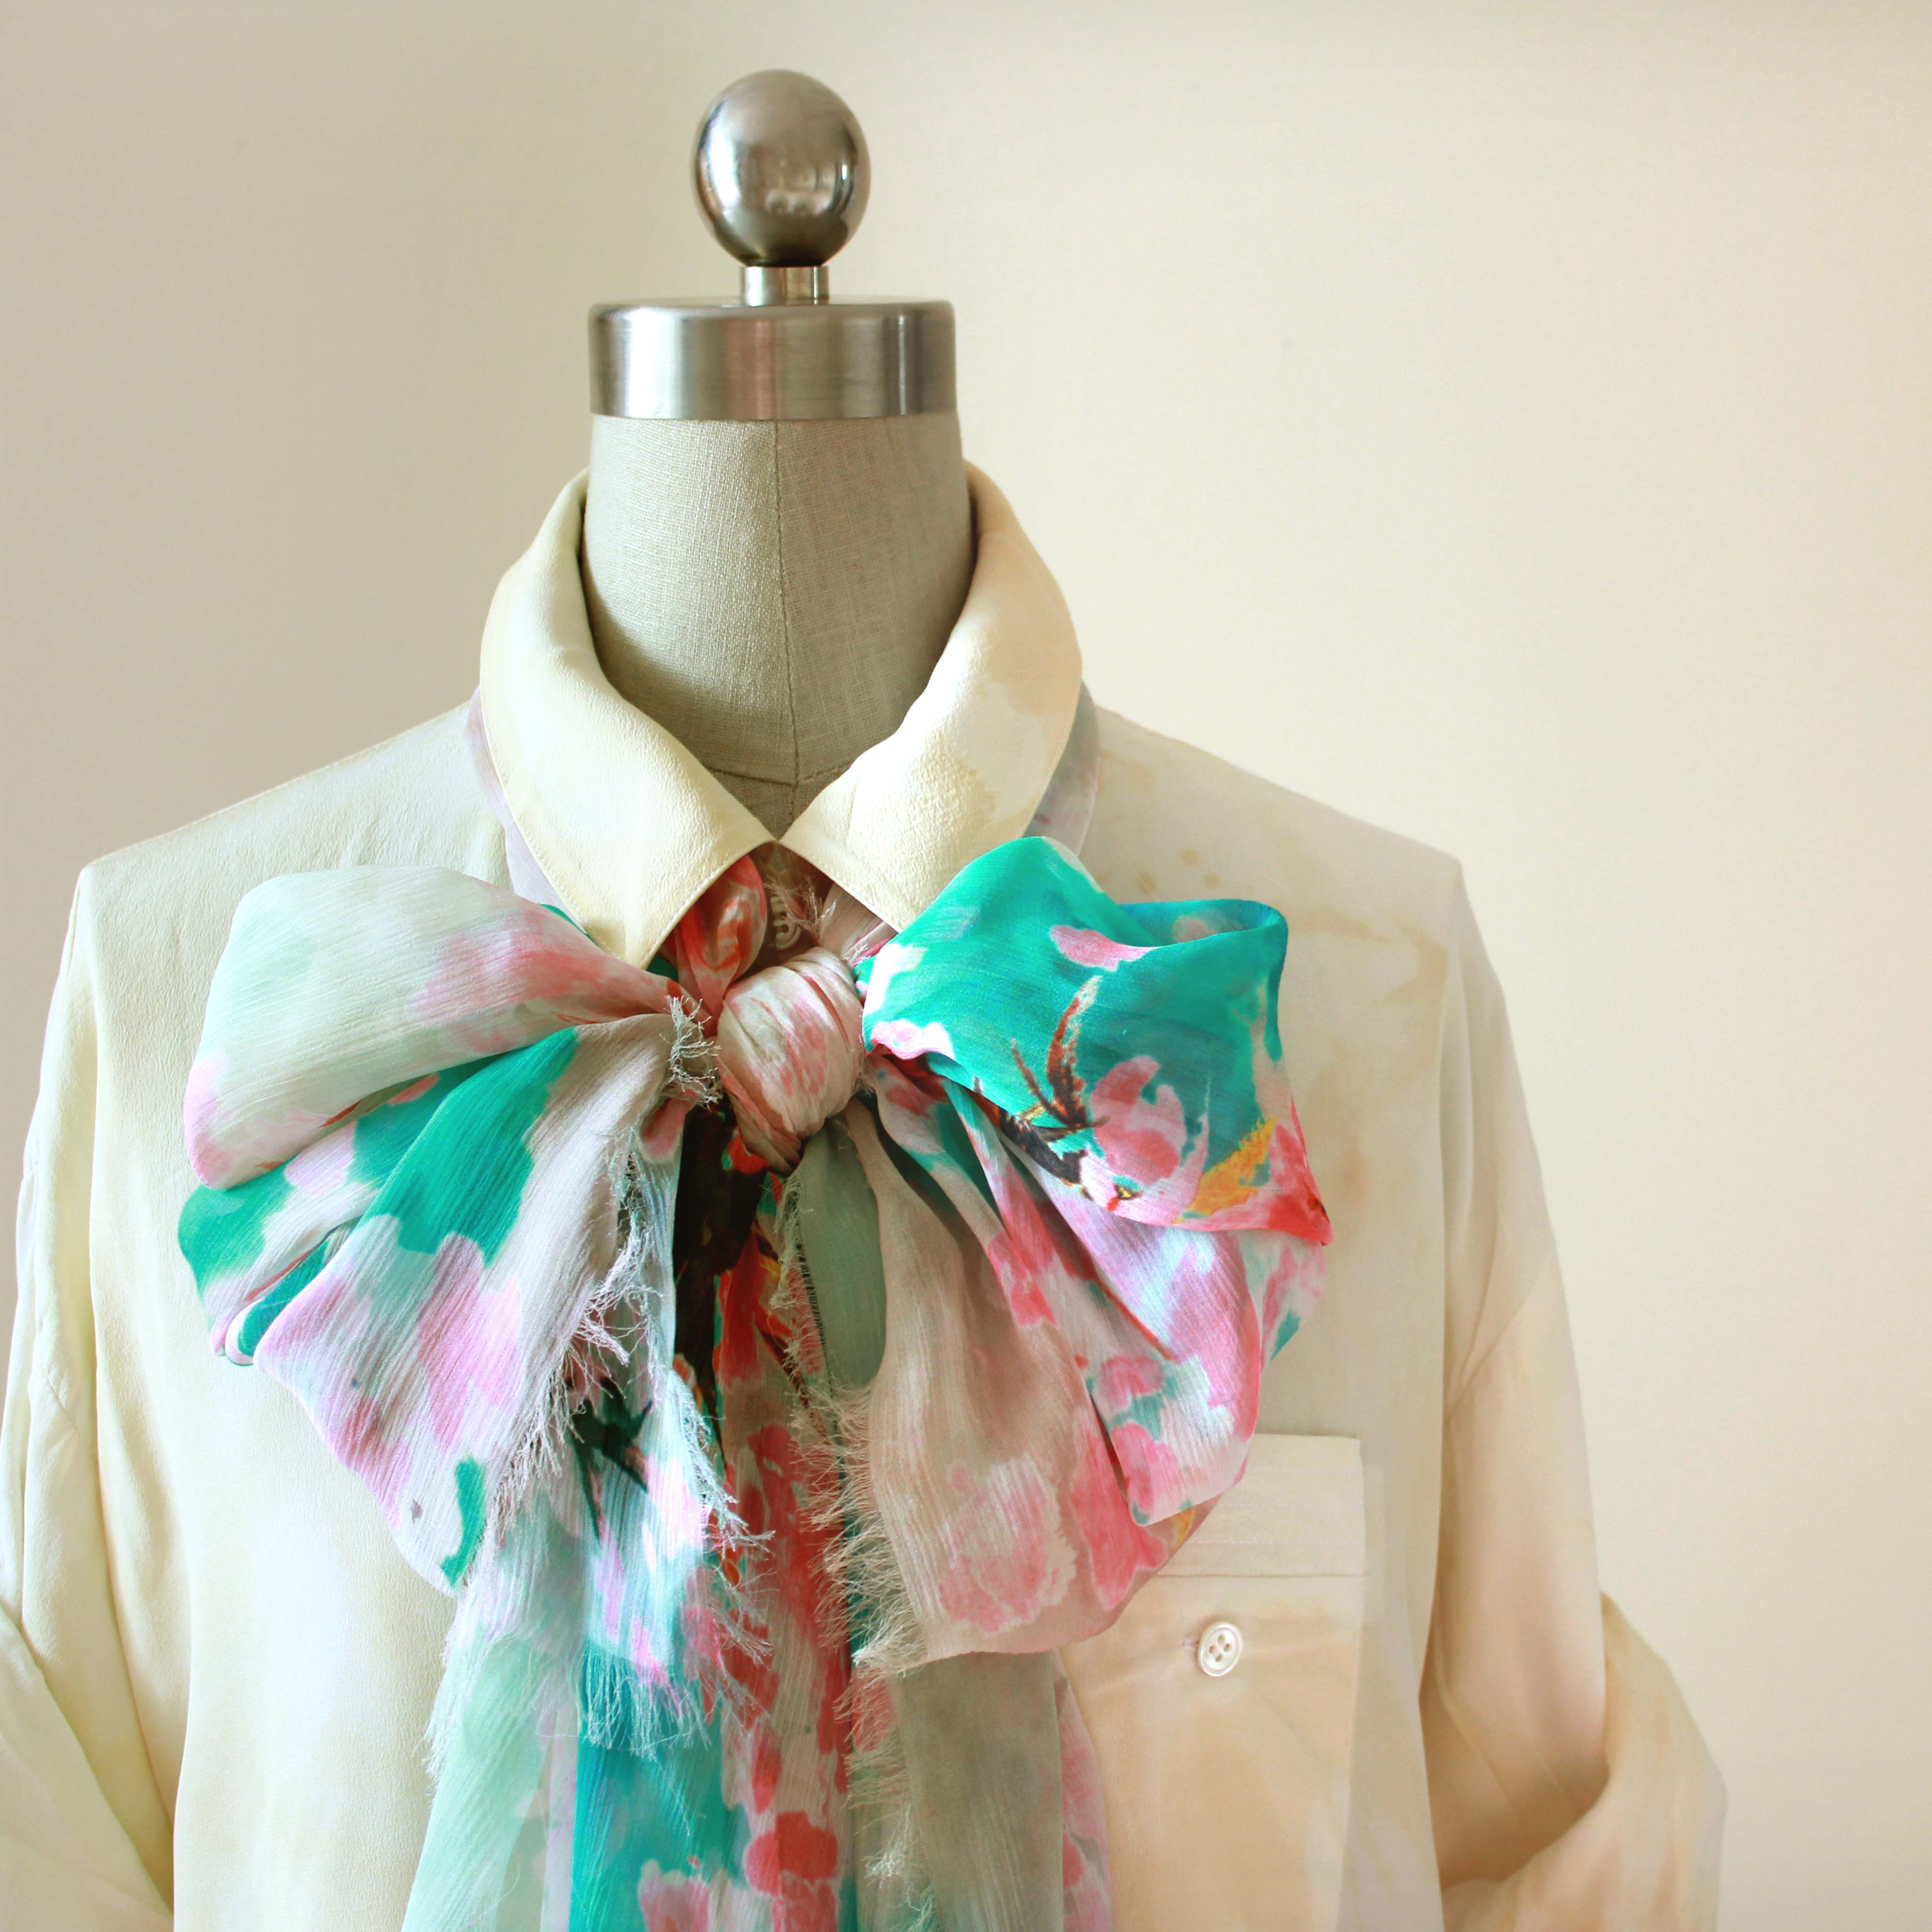 Digital Printed 100% silk long scarf with Cherry Blossom design from UnPaired design available on Etsy @ £48.00